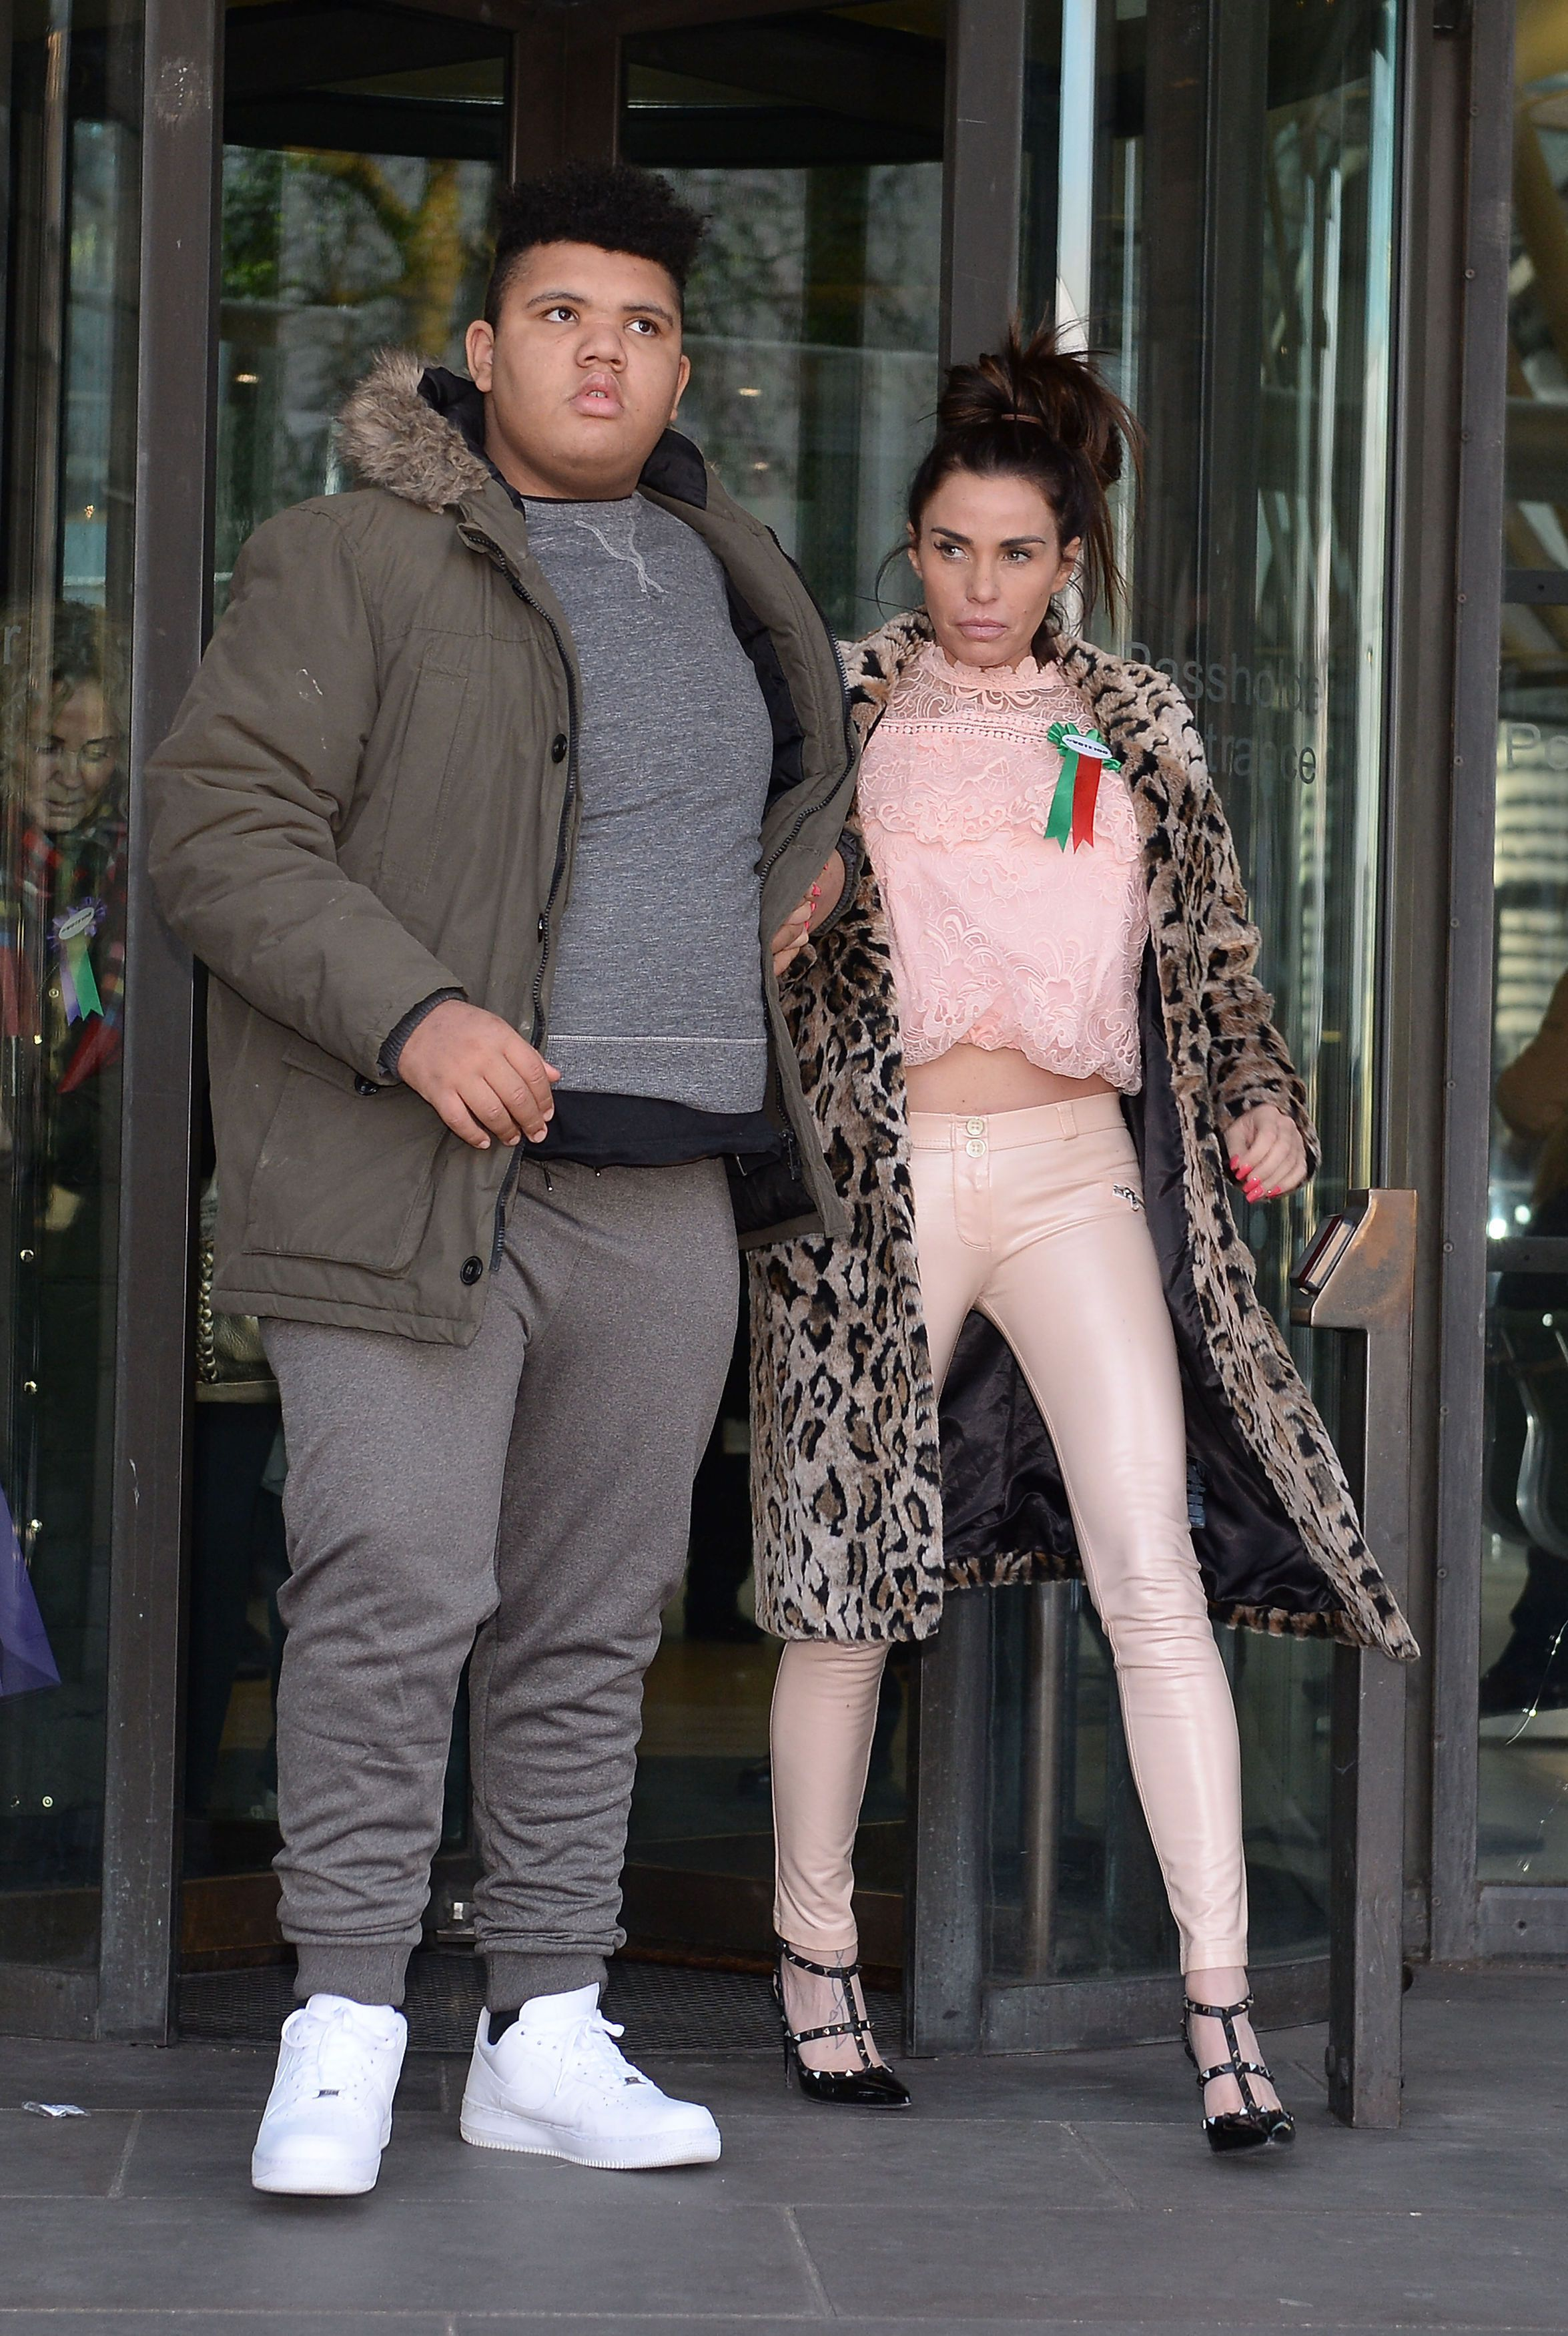 Katie Price with her son,